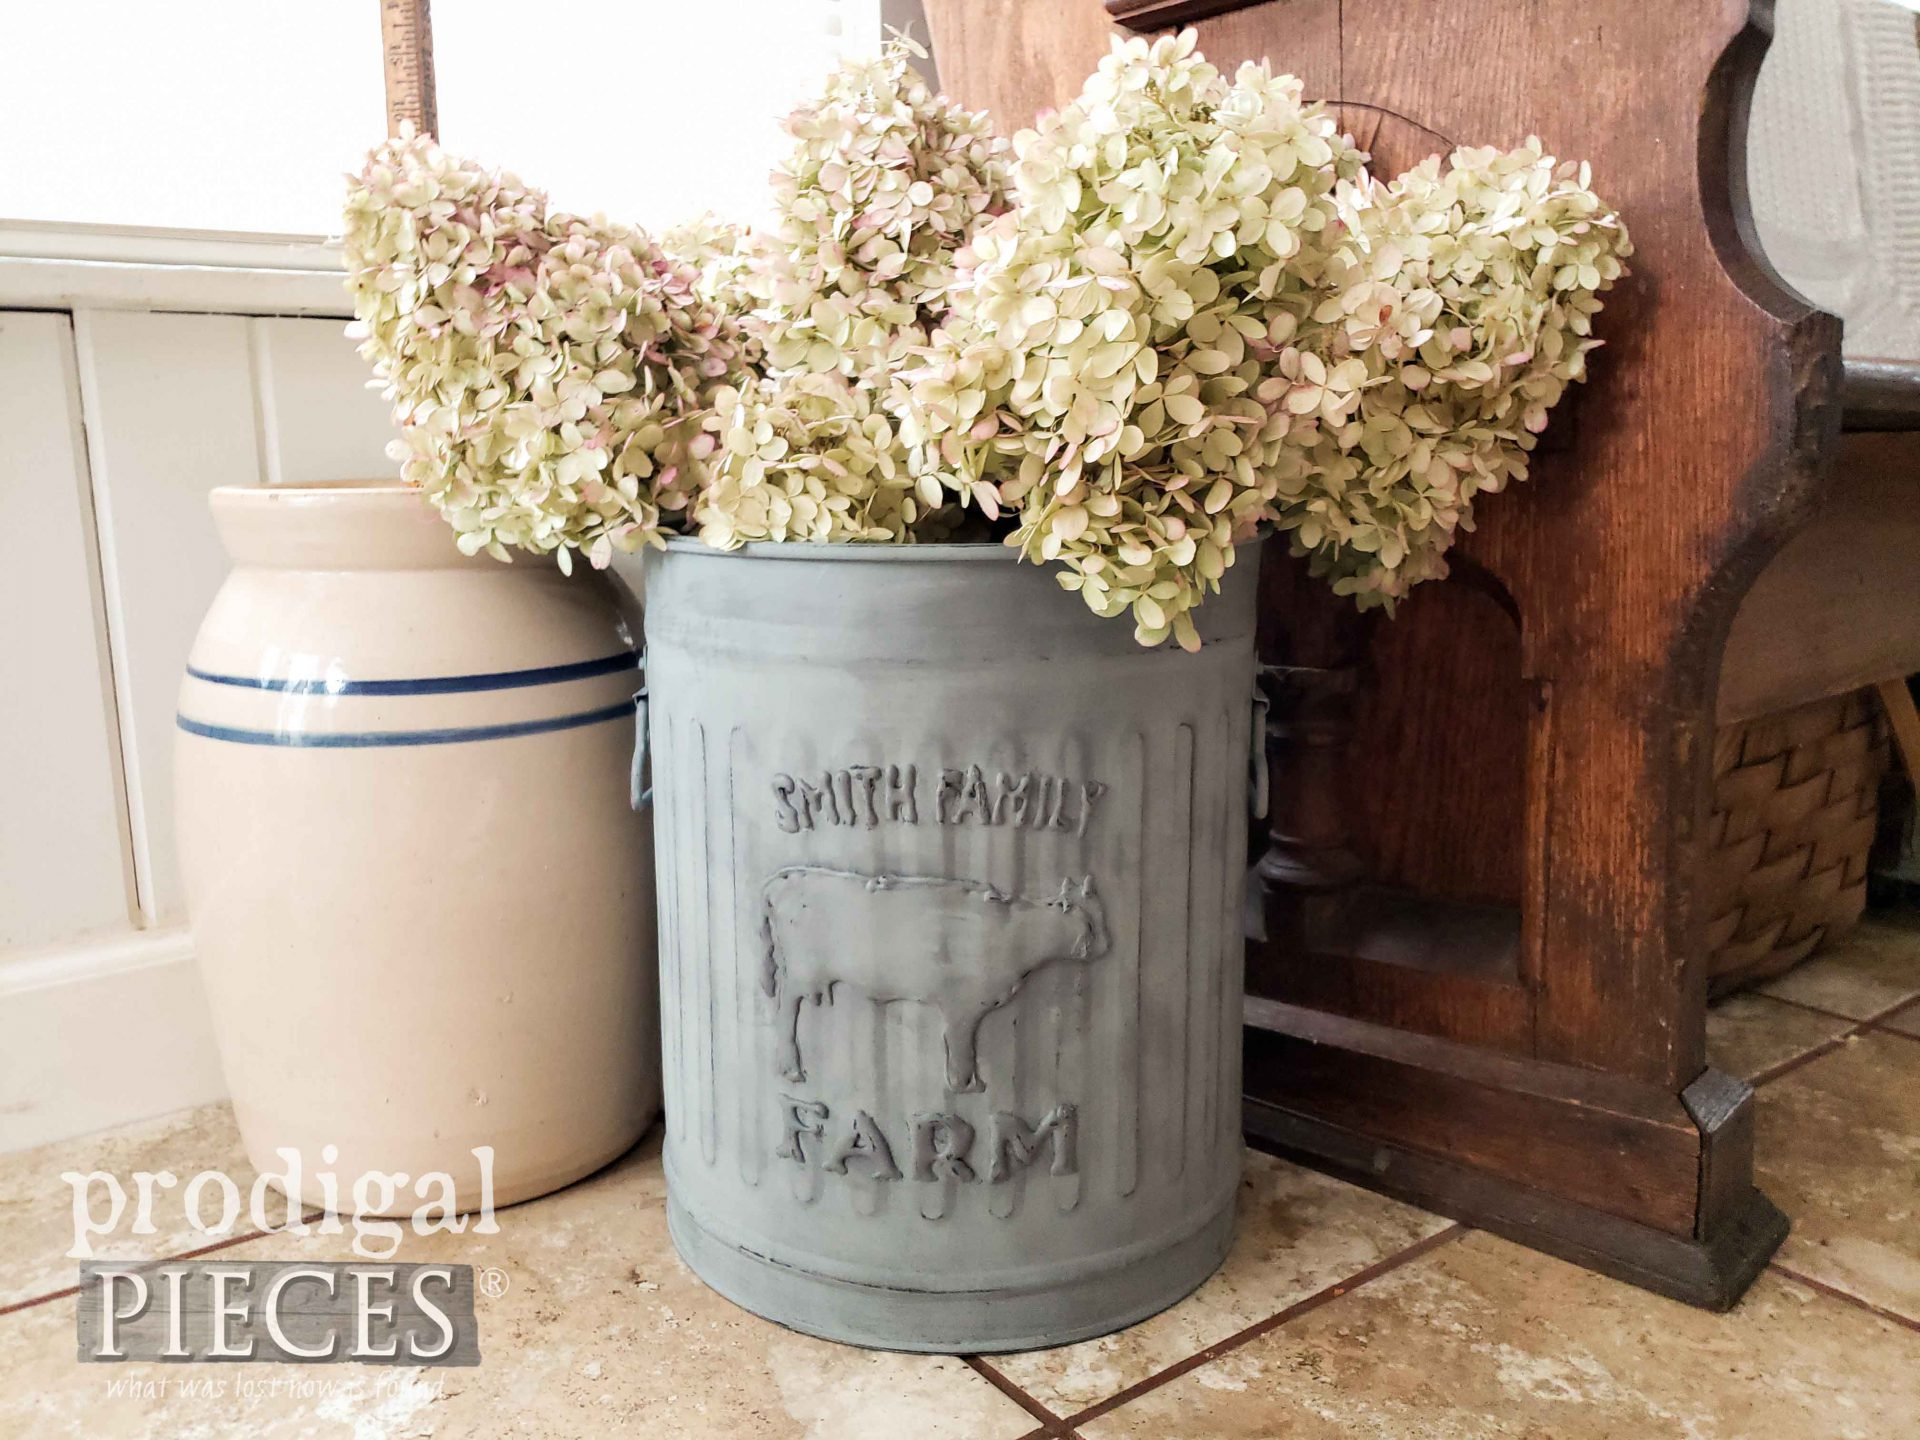 Rustic Farmhouse Dairy Trash Can DIY Tutorial by Larissa of Prodigal Pieces | prodigalpieces.com #prodigalpieces #farmhouse #diy #home #tutorial #homedecor